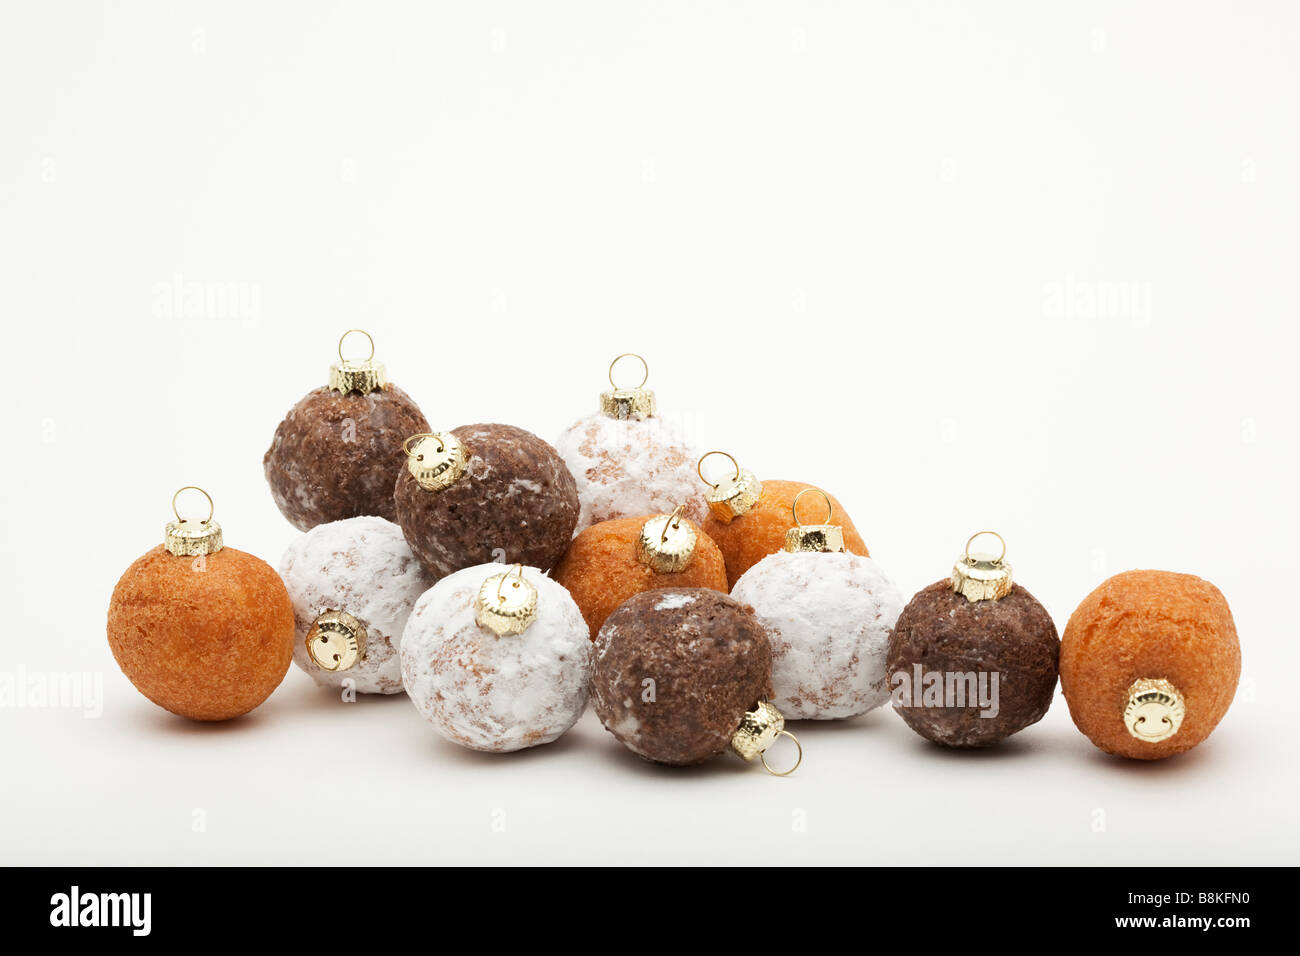 Christmas Ornament Tops.Twelve Donut Holes With Christmas Ornament Tops Stock Photo